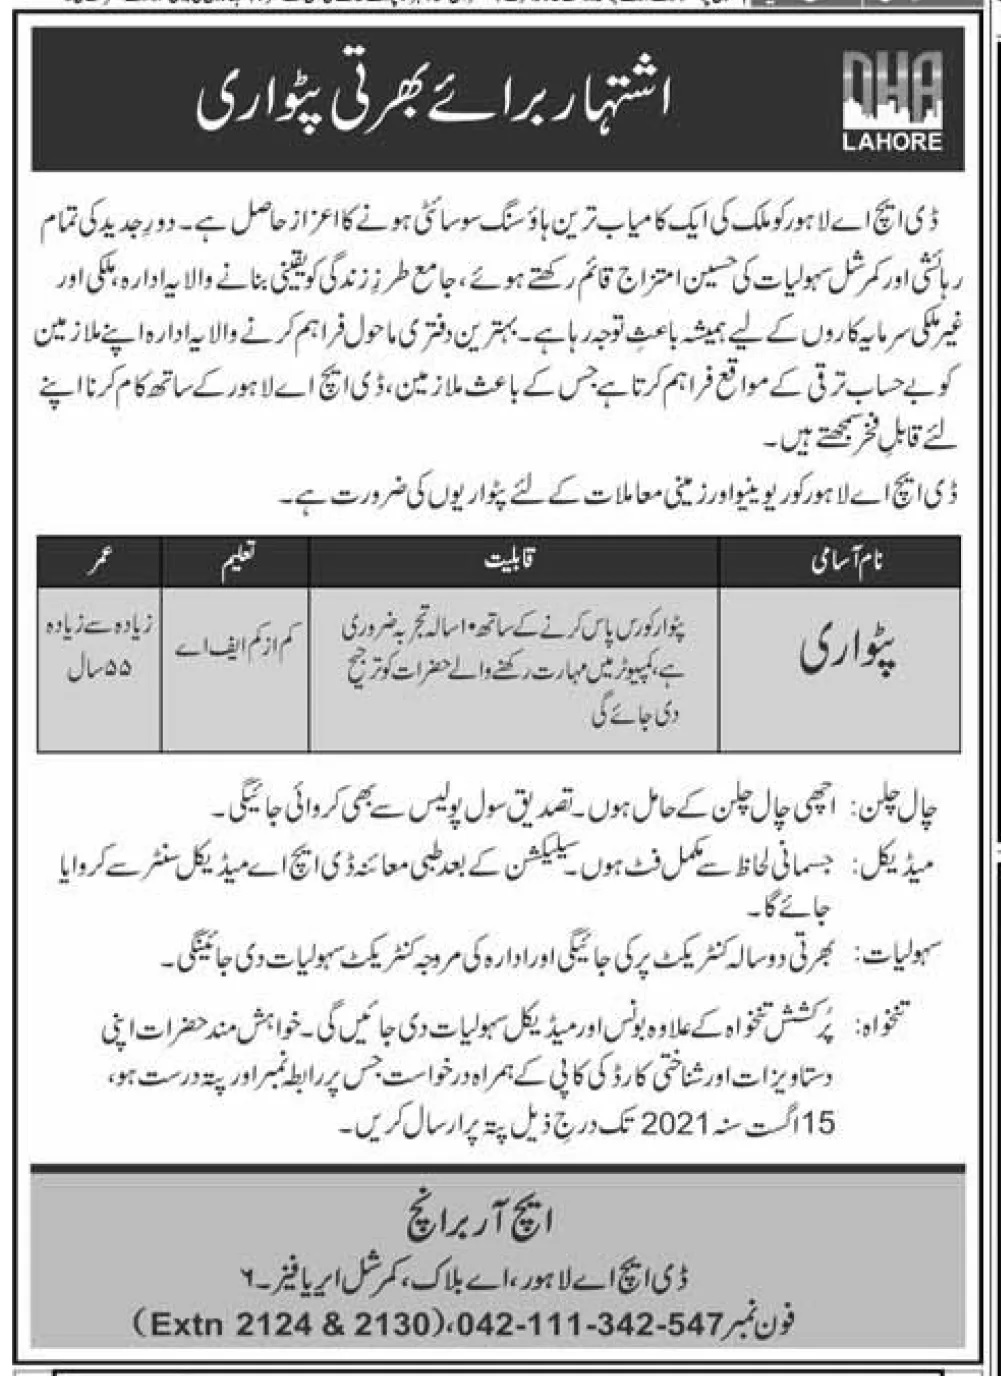 Defence Housing Authority DHA Lahore Jobs 2021